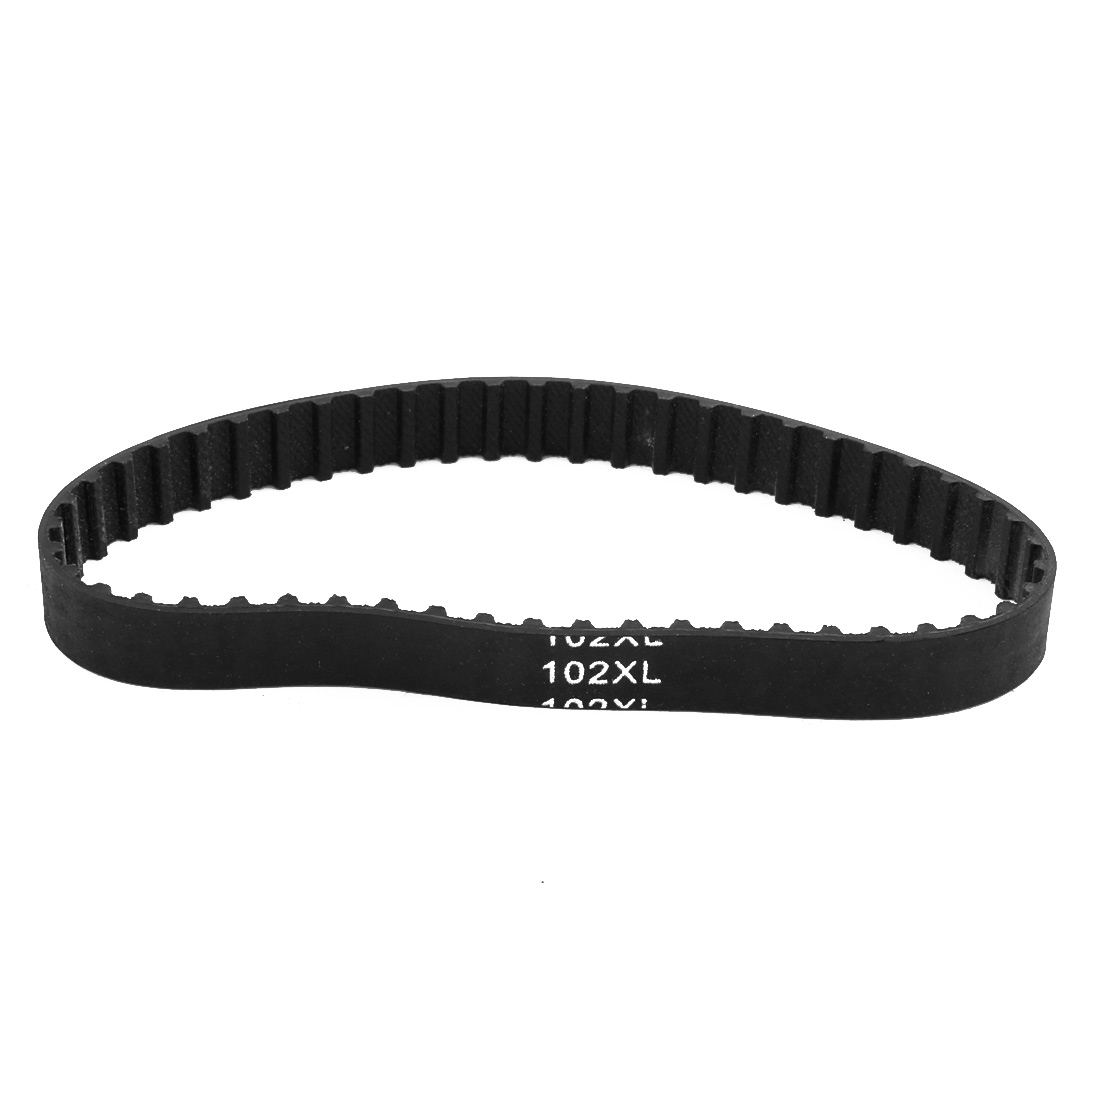 102XL 51 Teeth 10mm Width 5.08mm Pitch Stepper Motor Rubber Timing Belt Black